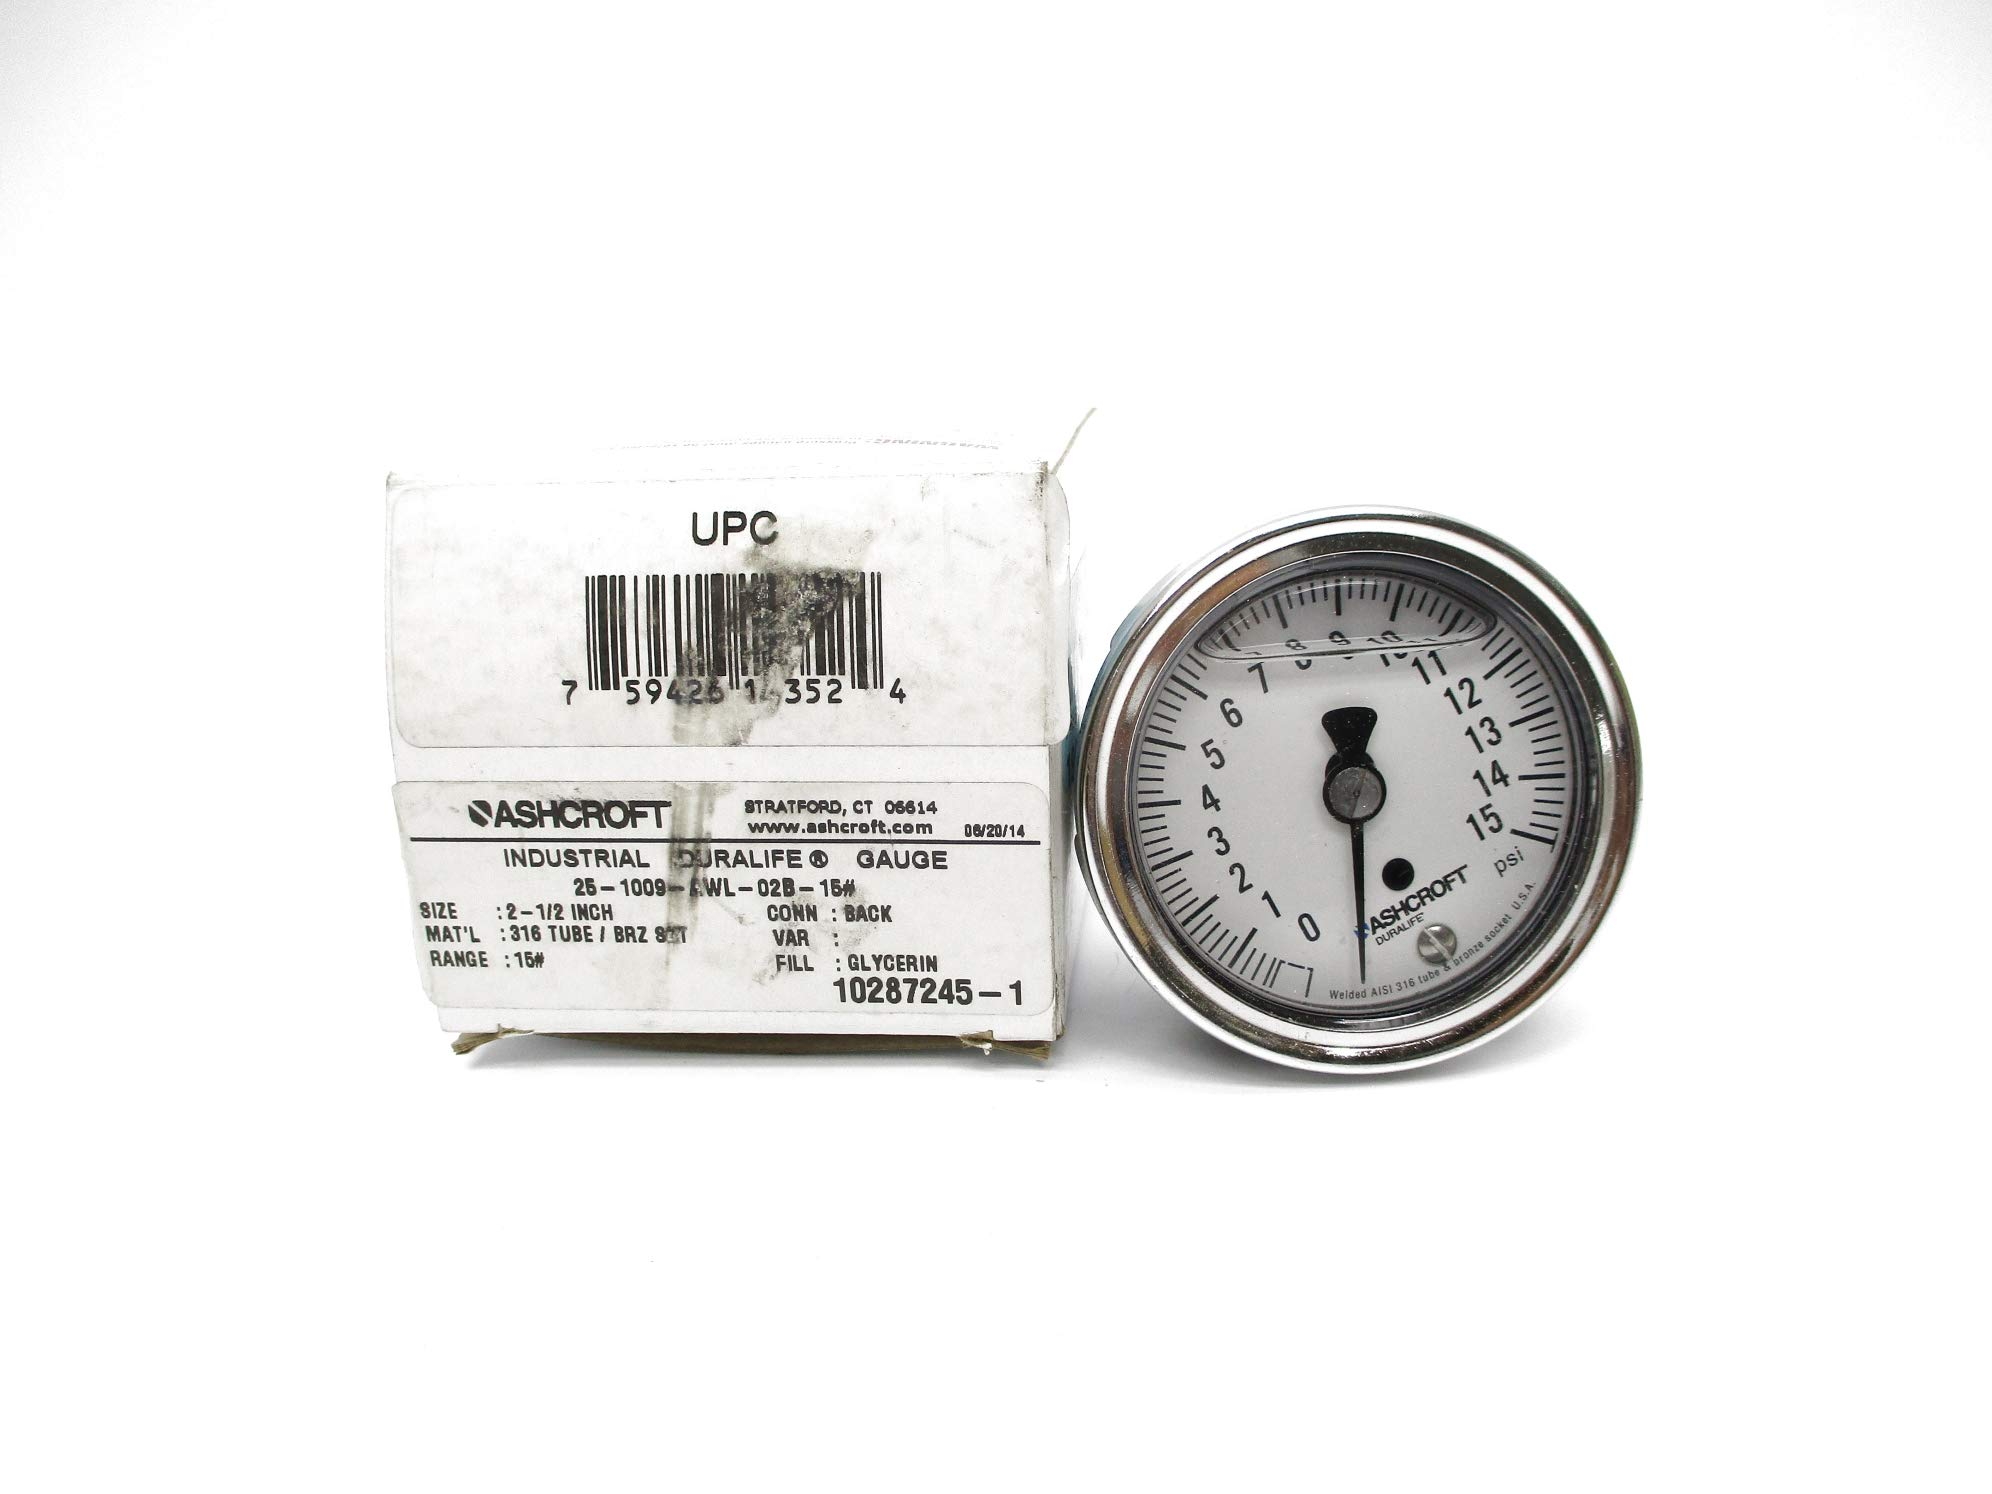 Ashcroft 25-1009-AWL-02B-15# 0-15PSI NSMP by INDUSTRIAL MRO